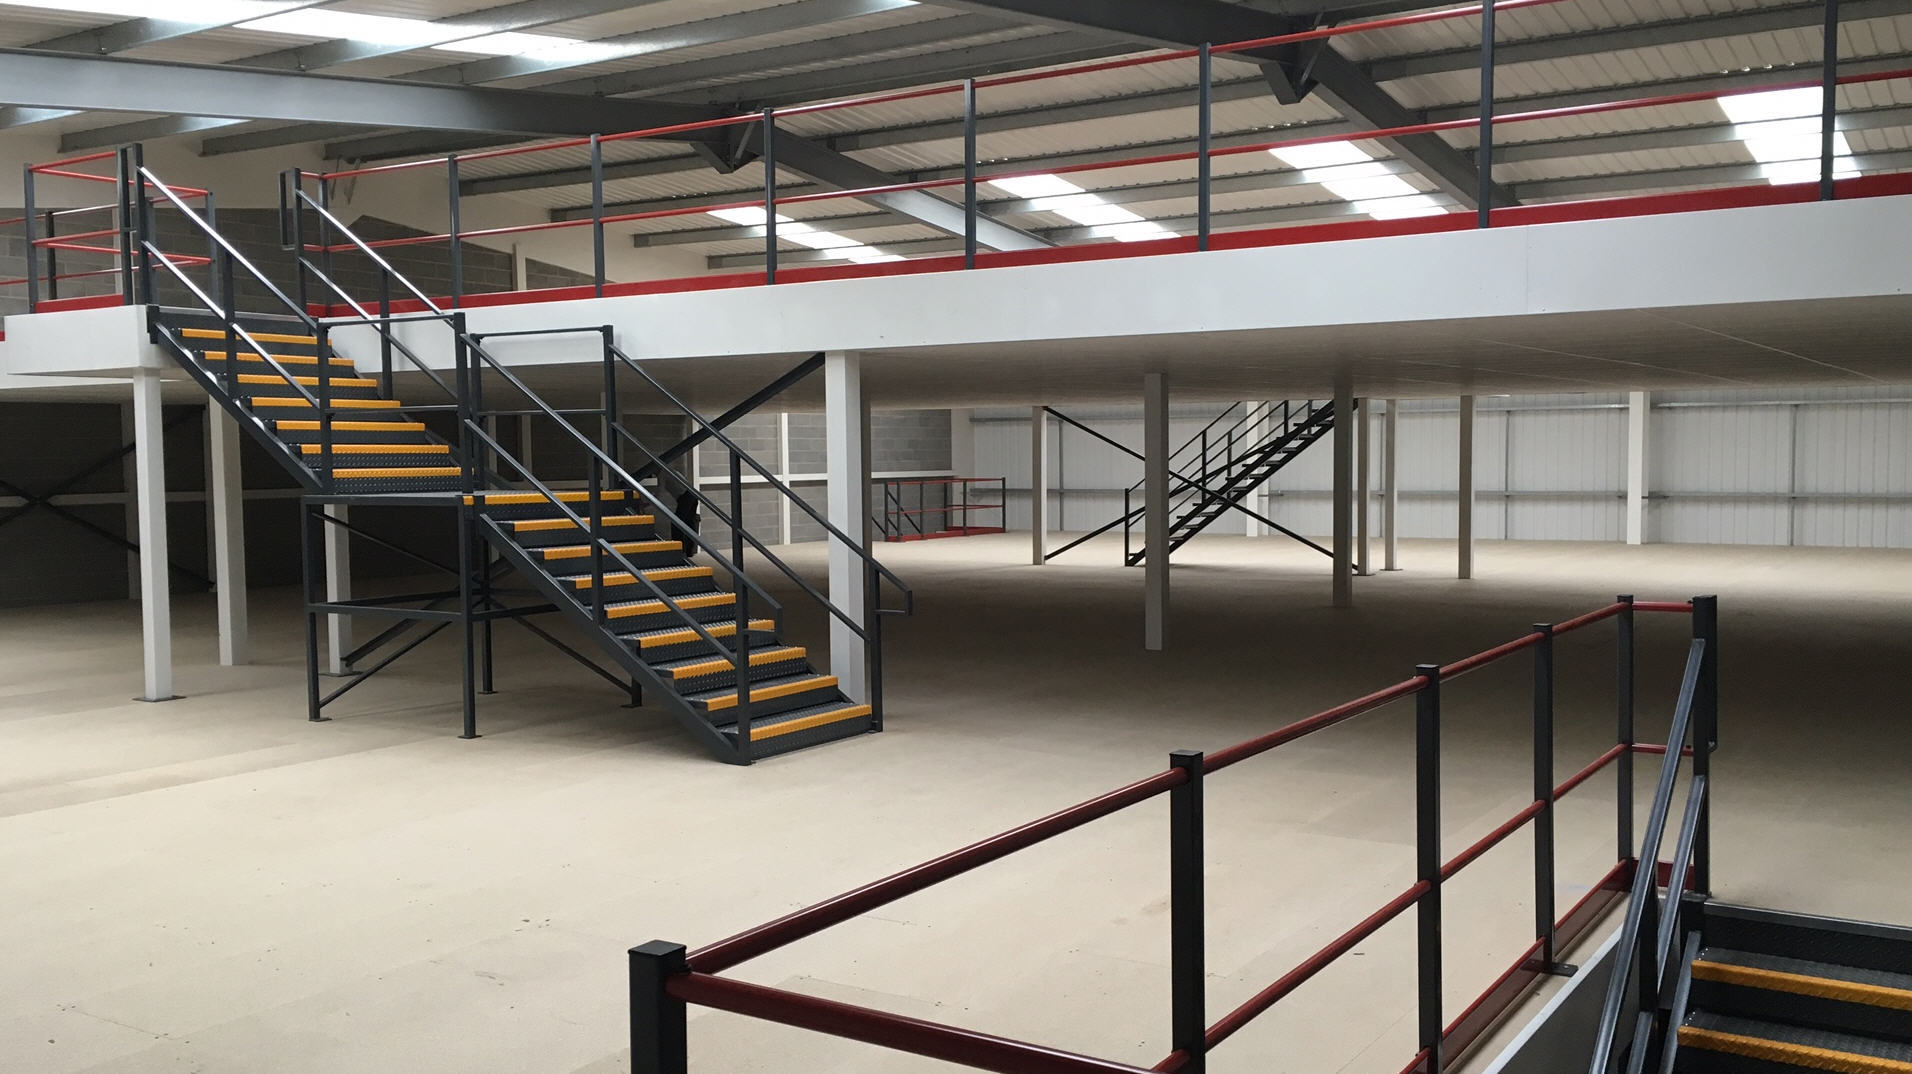 mezzanine office space. 2 Storey Storage Mezzanine By Cubex Contracts Office Space N